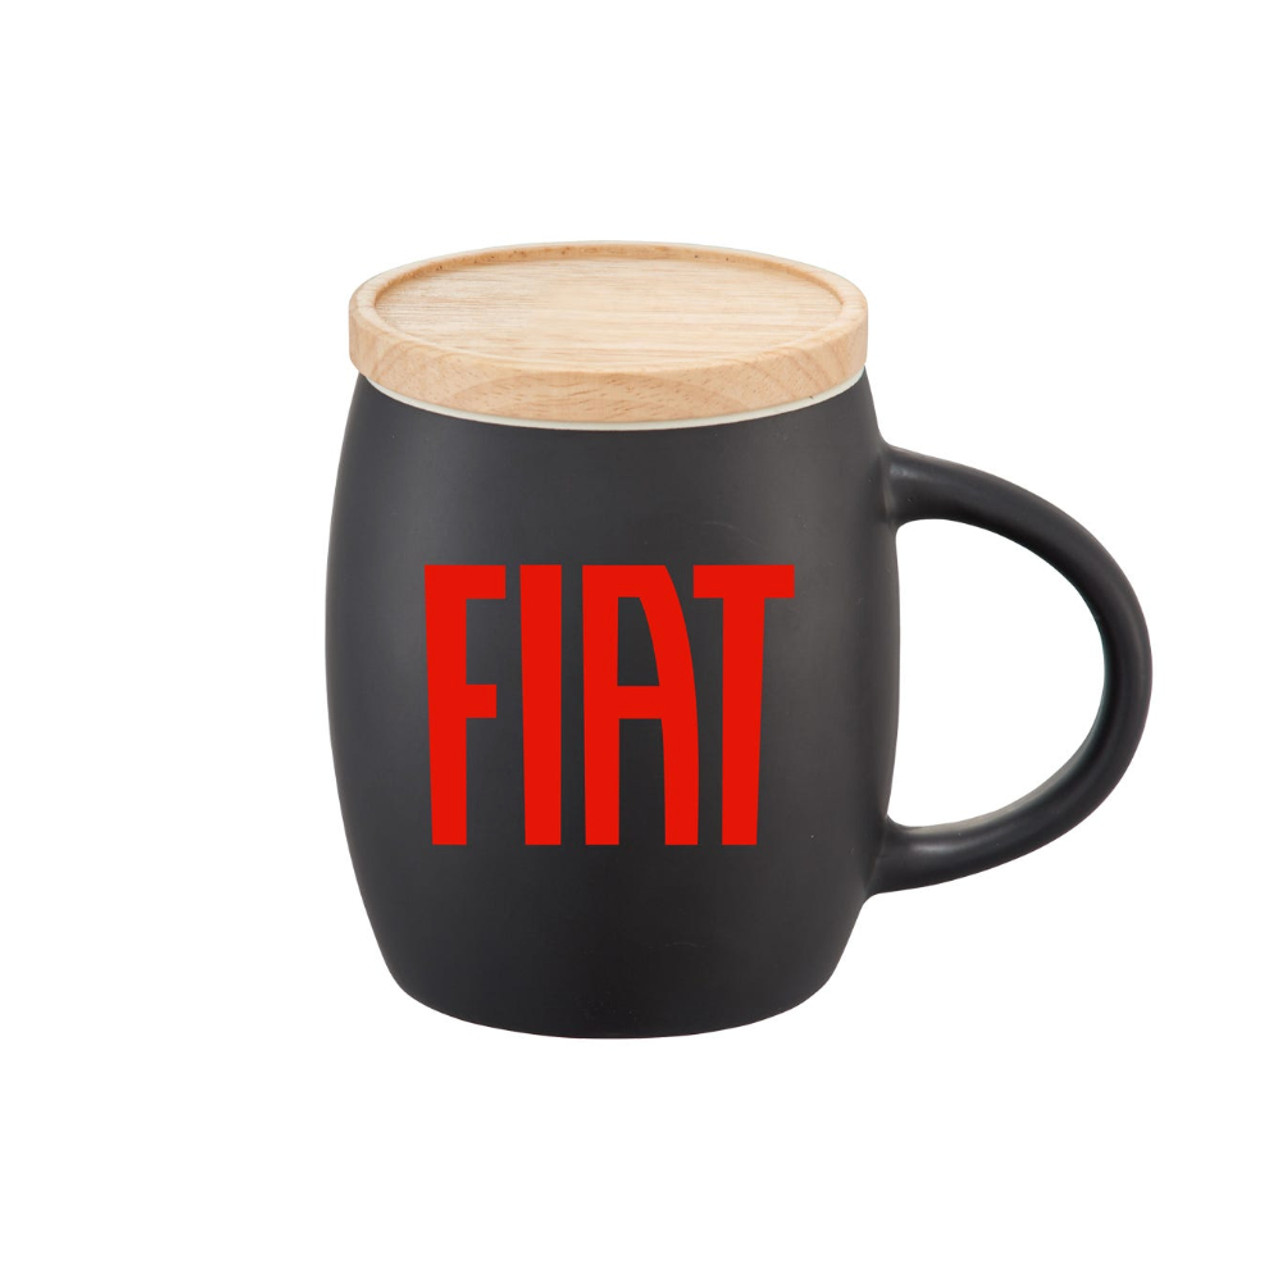 FIAT Coffee Mug with Wooden Lid